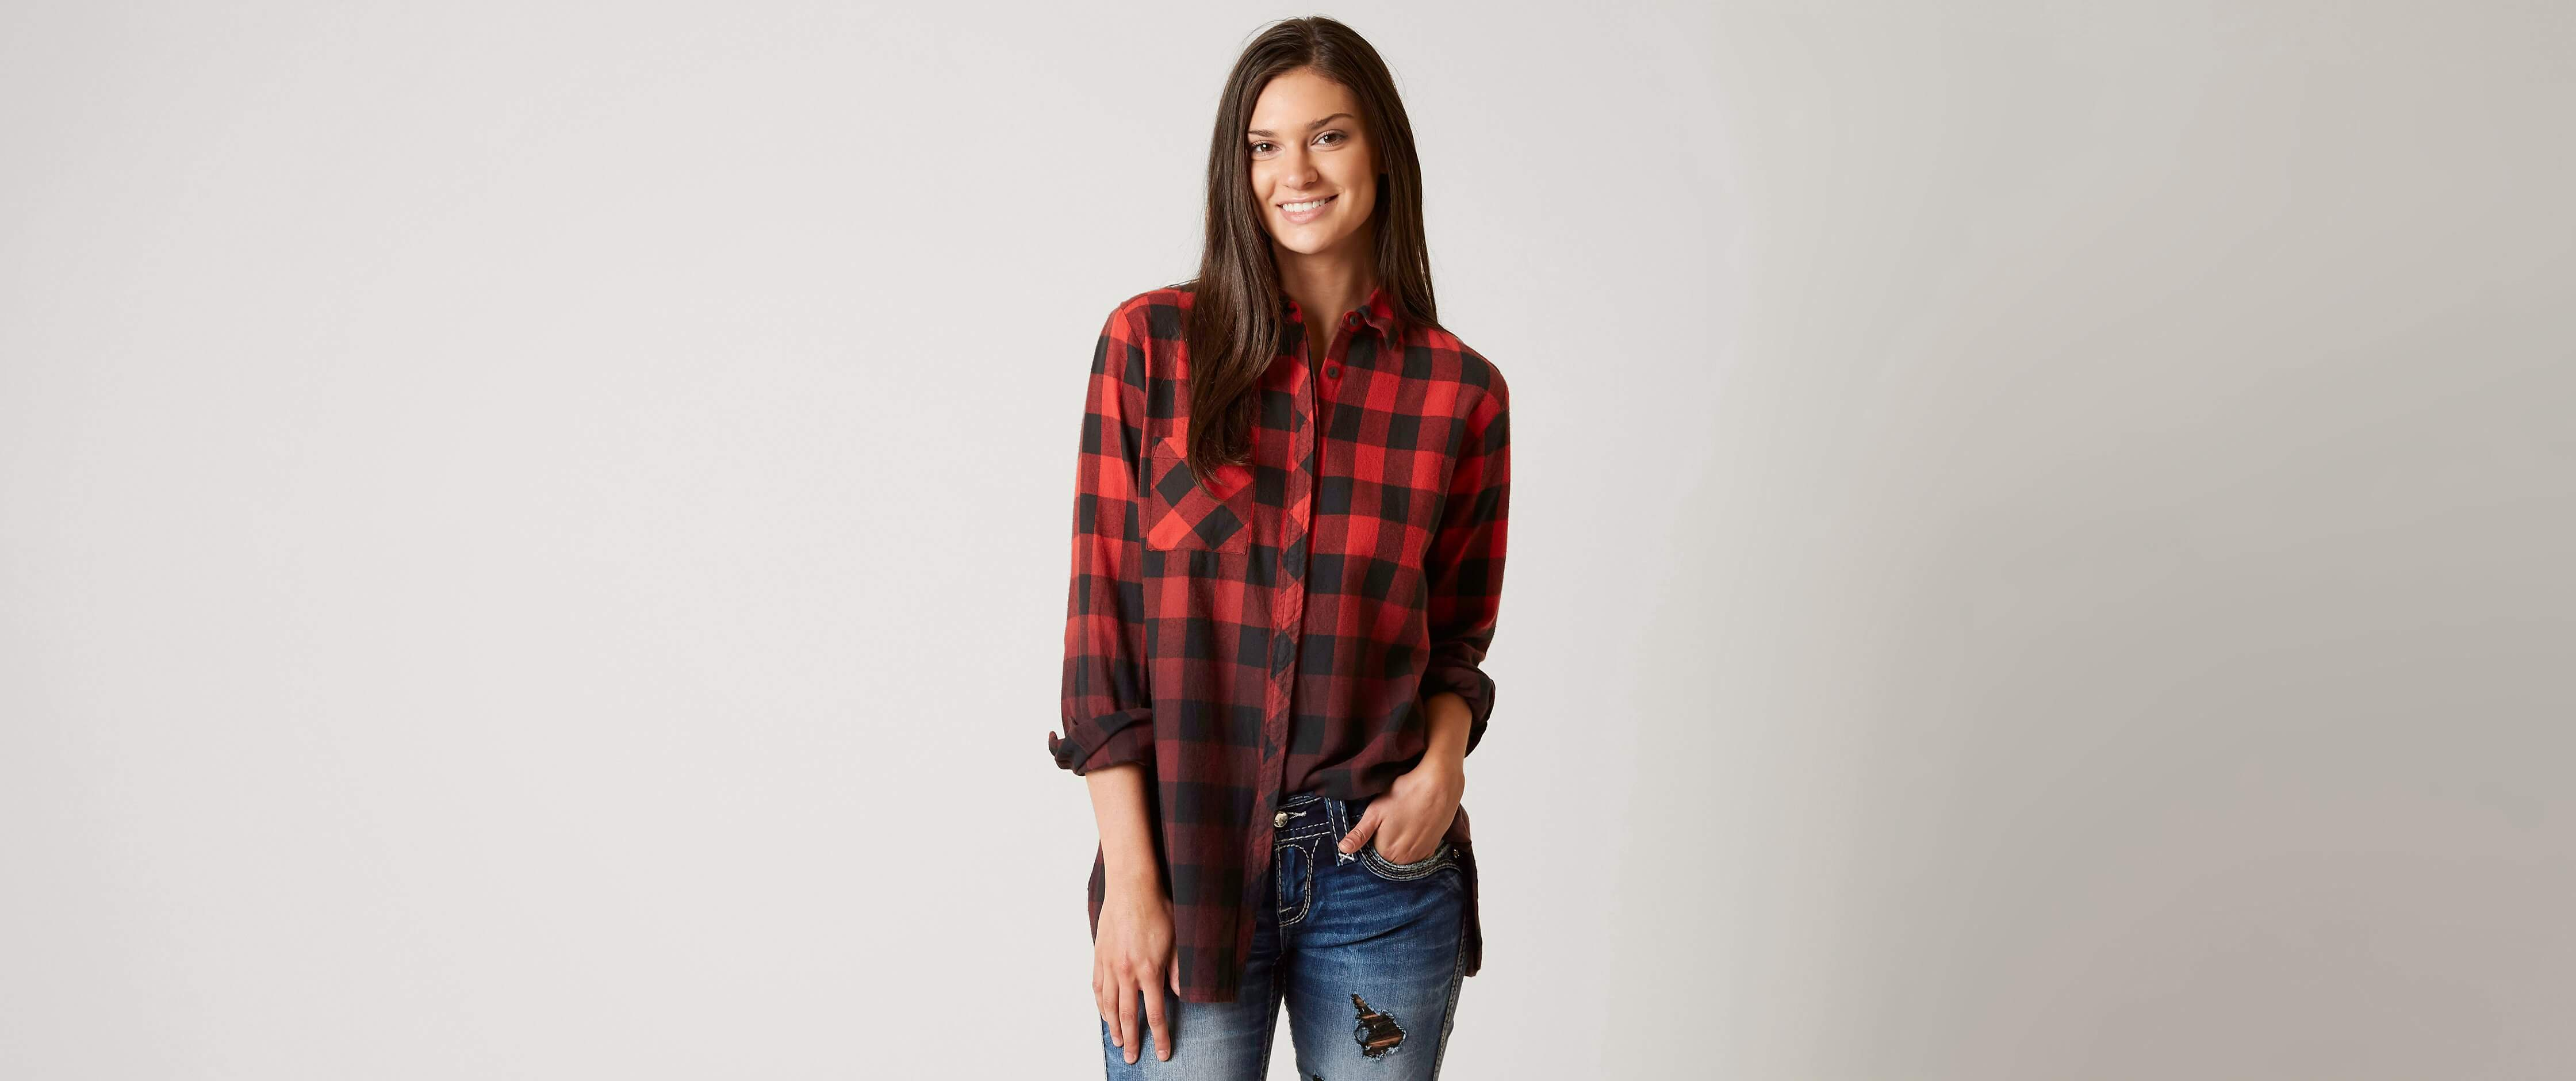 Buy Red tartan plaid shirts for women picture trends